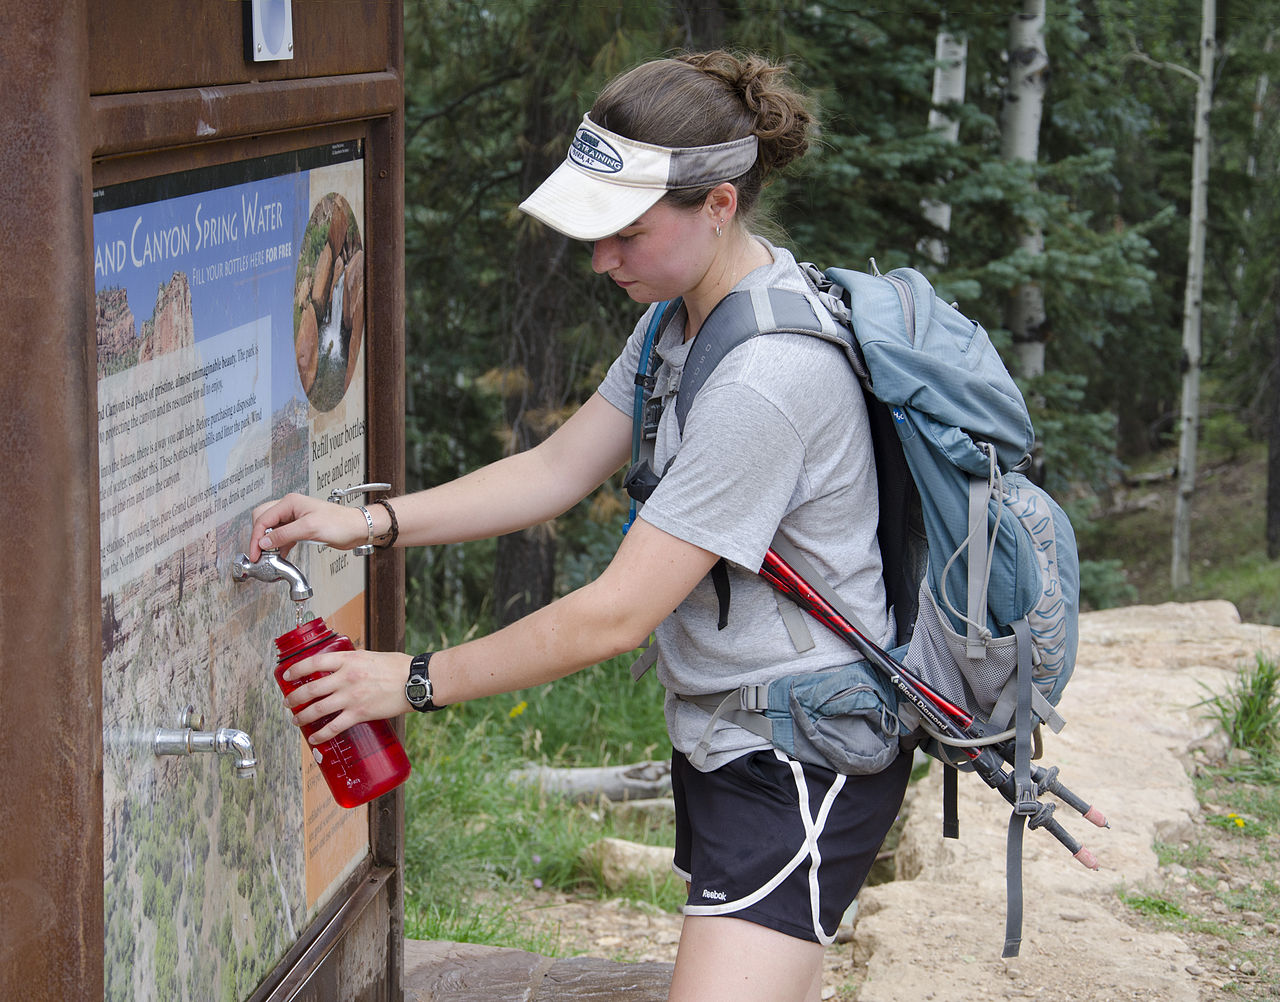 Dog Water Bottle >> File:Grand Canyon National Park, North Kaibab Trailhead - Water Bottle Filling Station 7089 ...